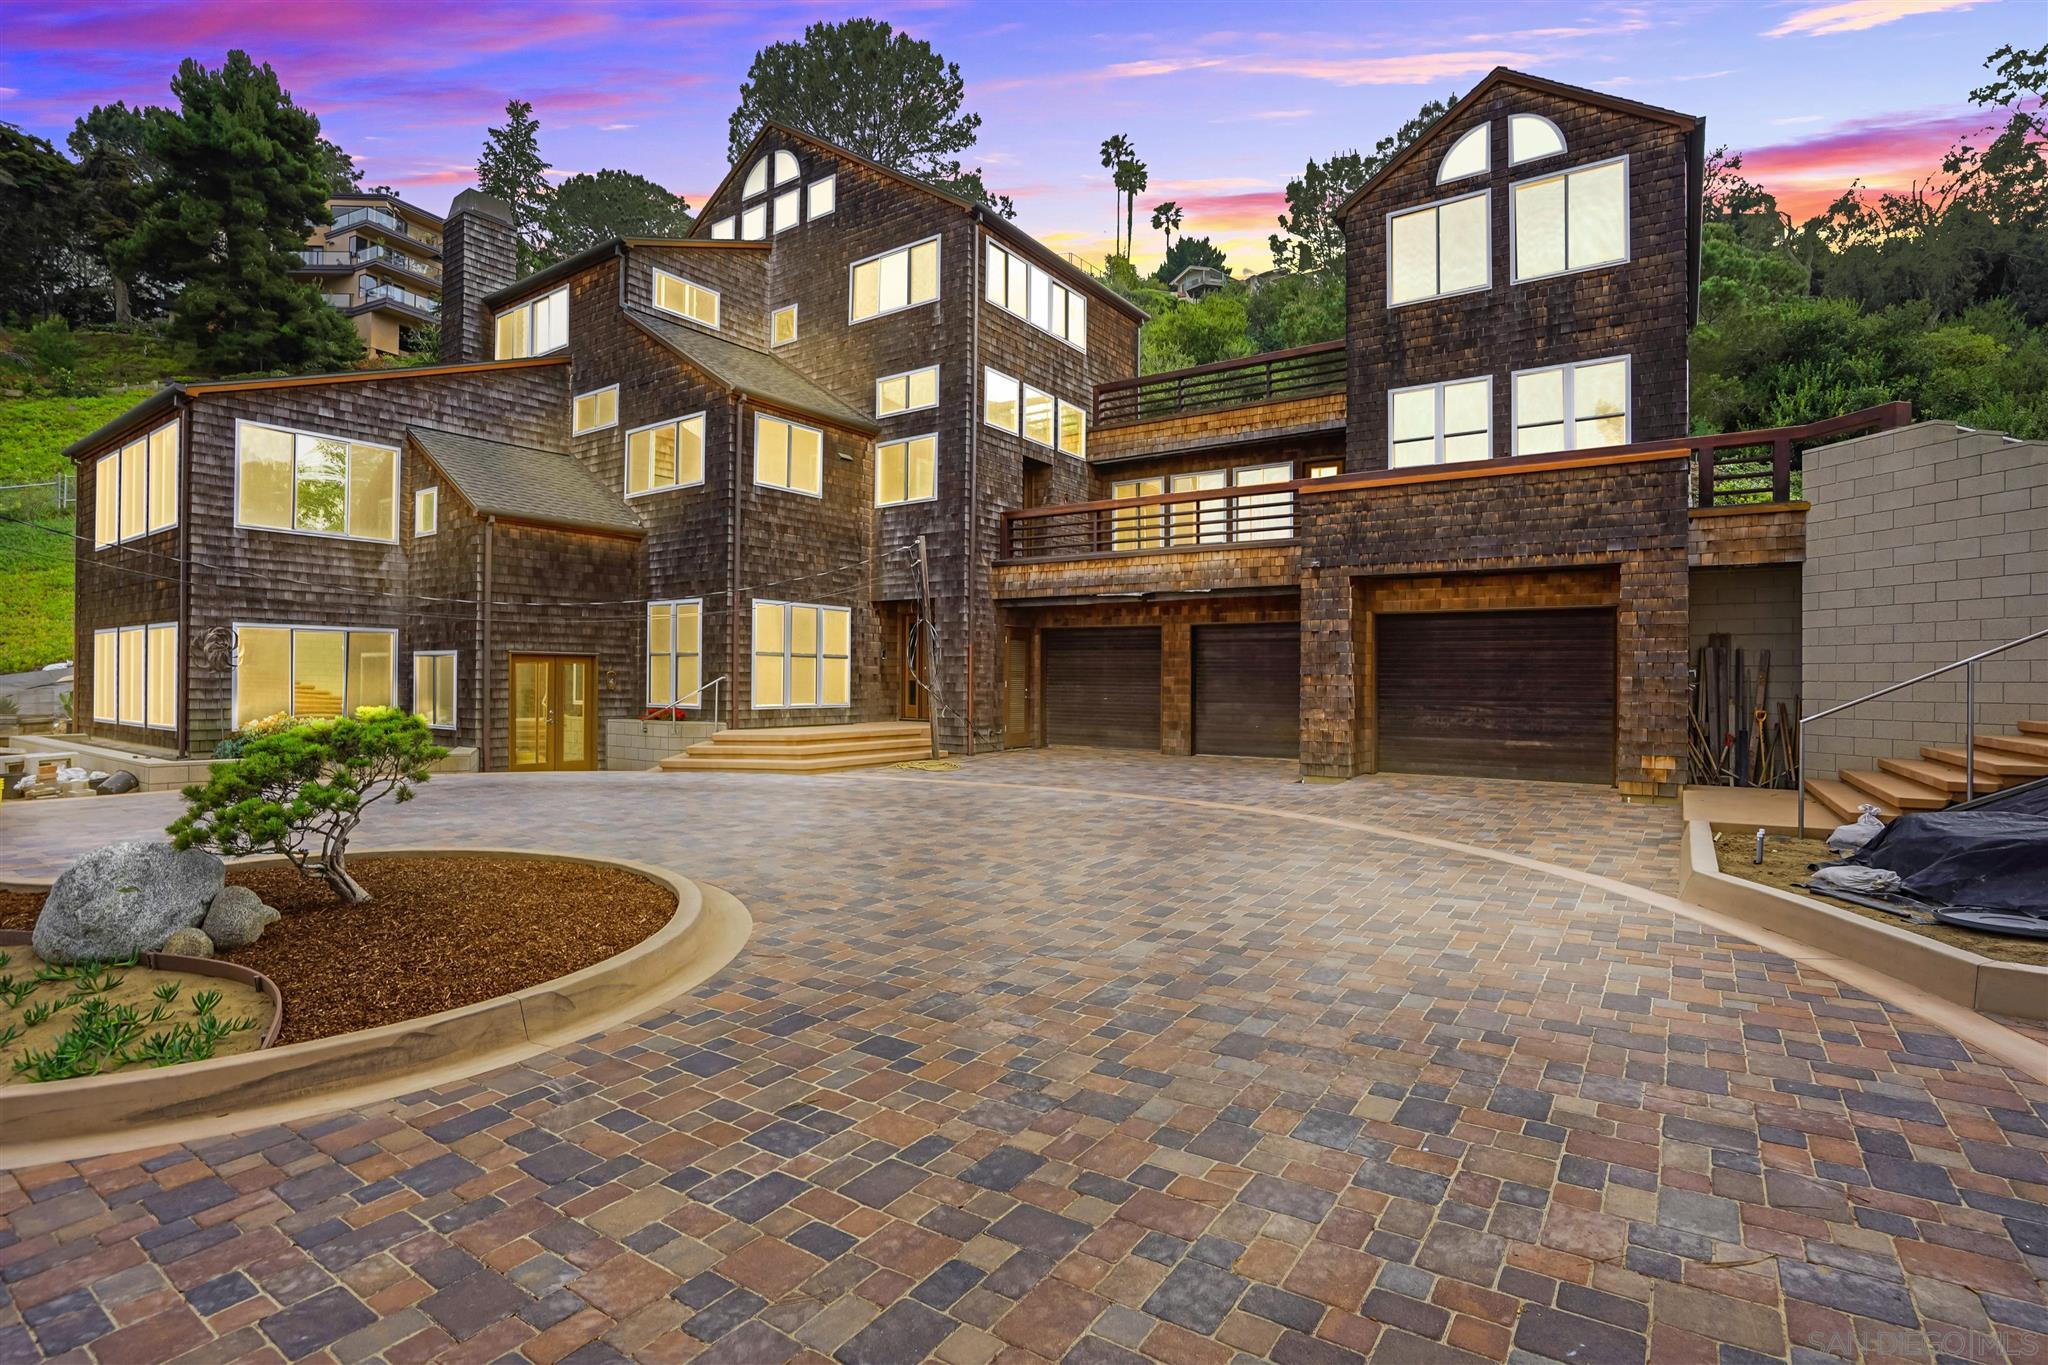 3-Story House In Del Mar